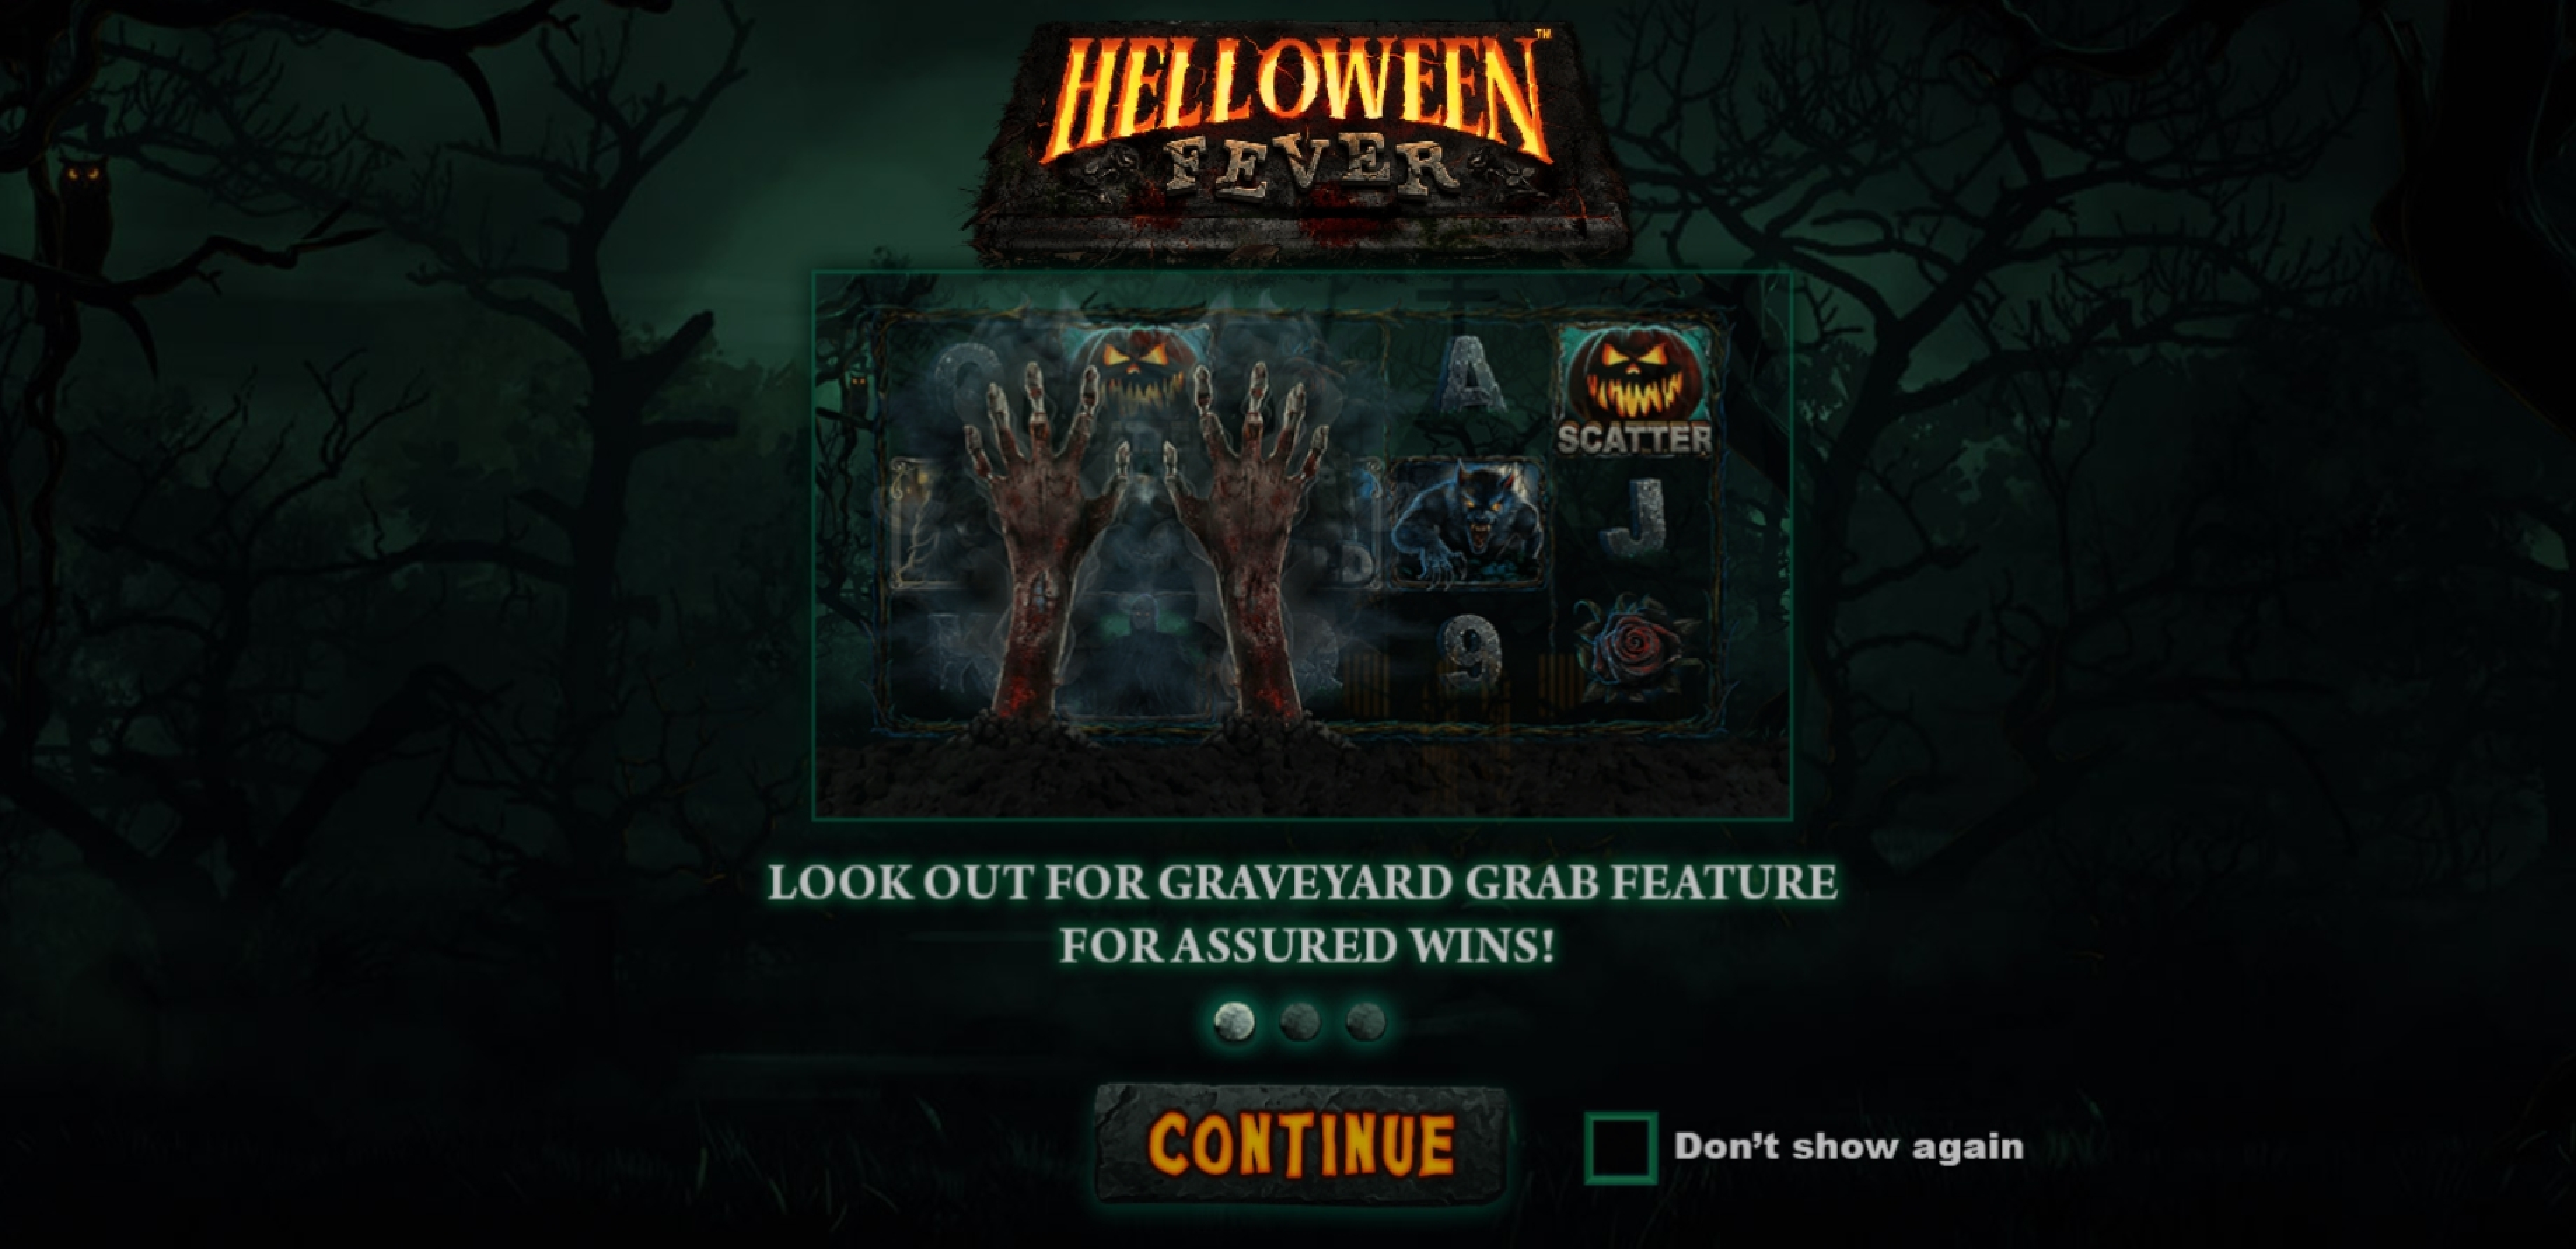 Play Helloween Fever Free Casino Slot Game by Plank Gaming